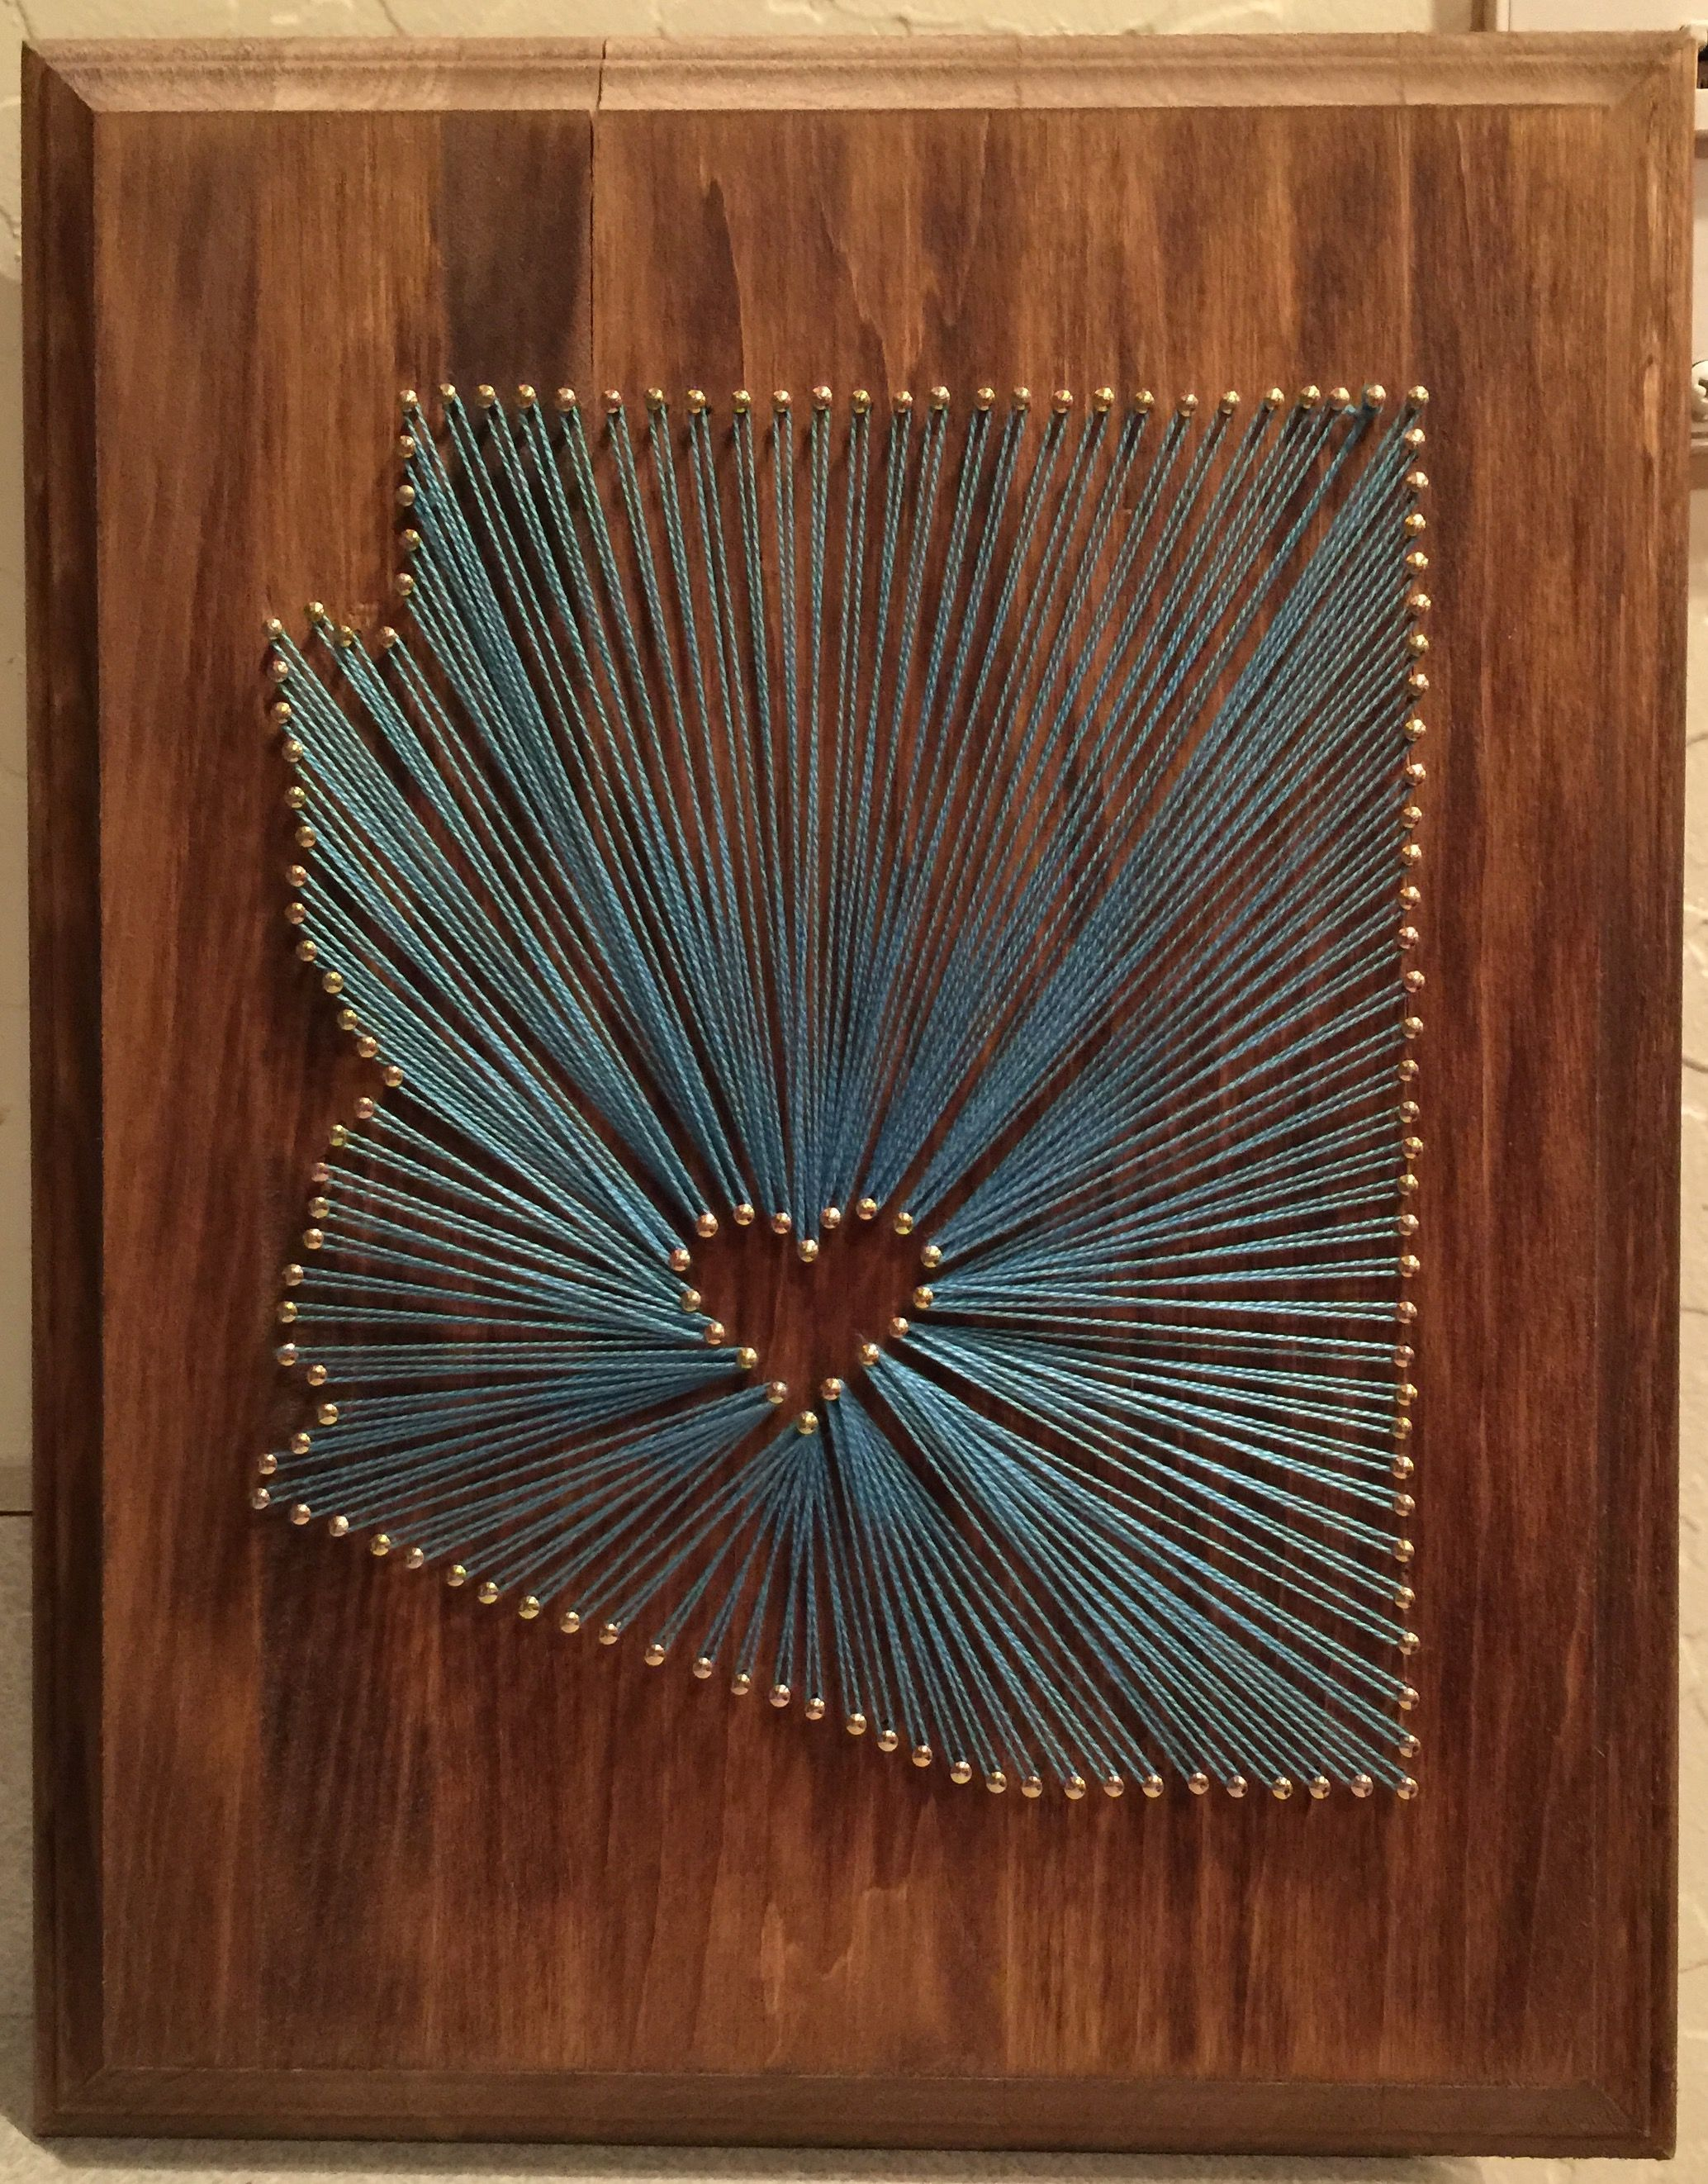 a780c7007 Arizona string art (made for a friend) Stained wood (purchased board from  Michaels) Used linoleum nails and embroidery thread